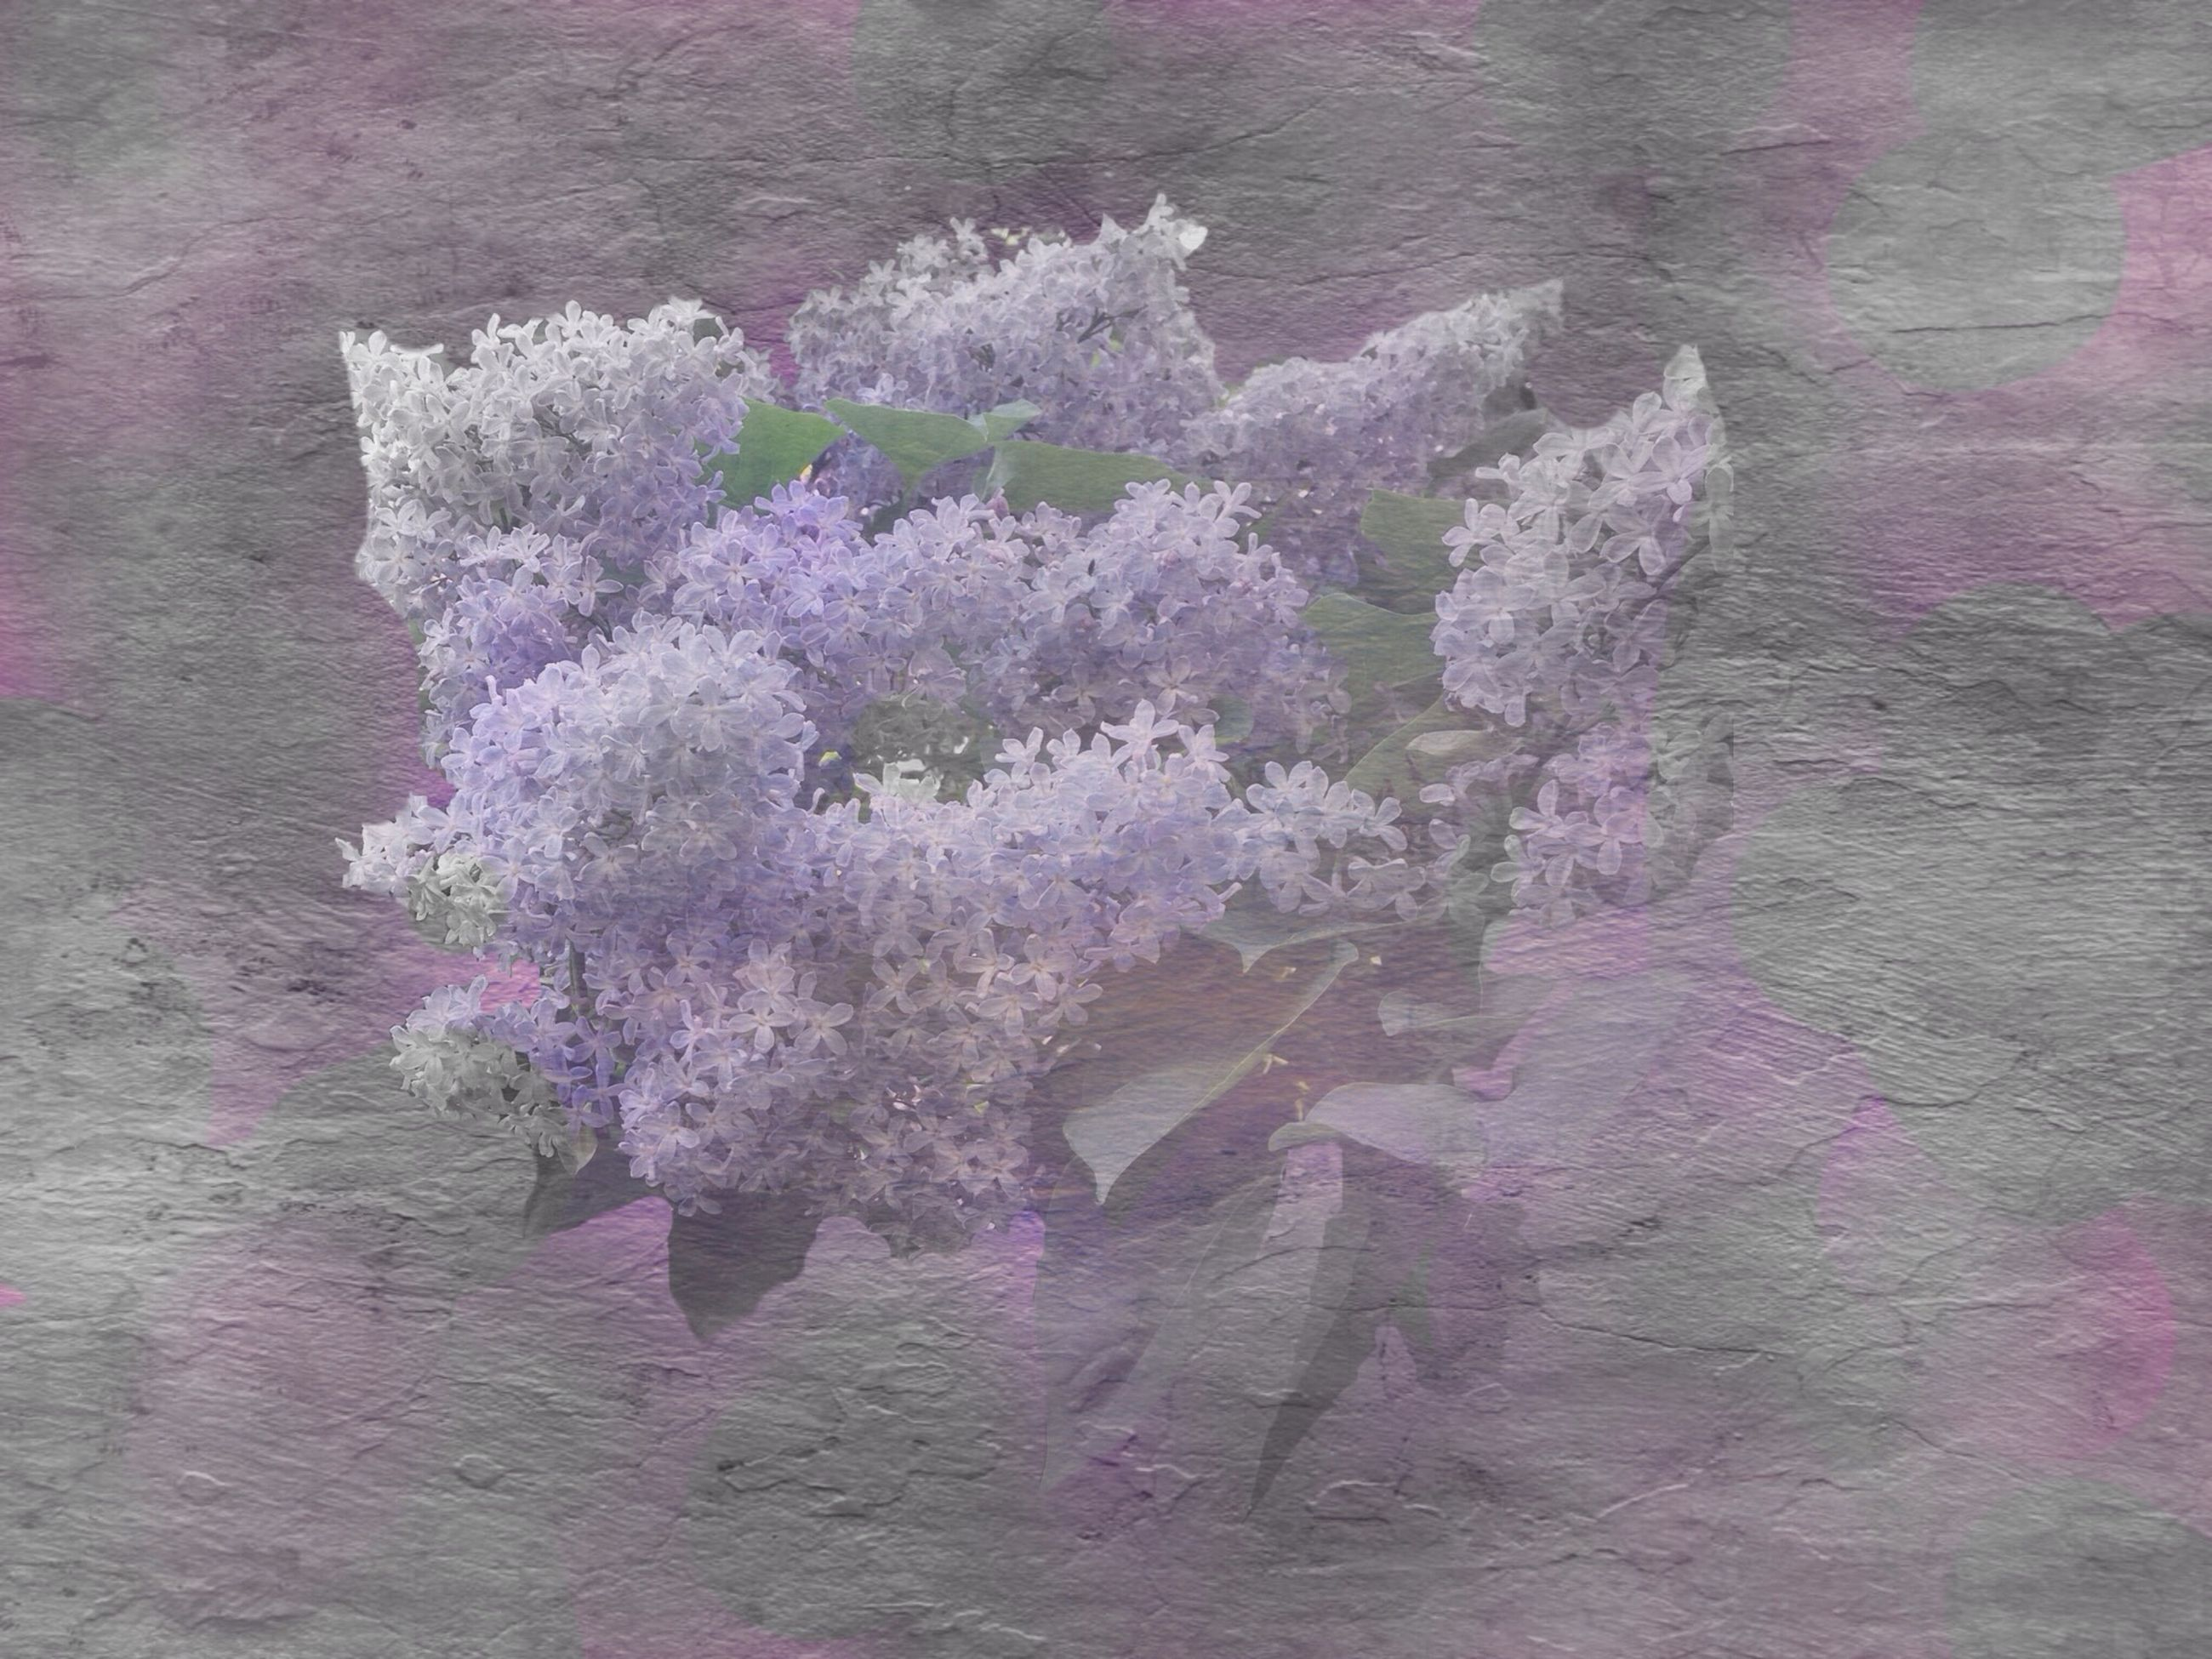 flower, growth, plant, nature, pink color, fragility, wall - building feature, high angle view, freshness, beauty in nature, close-up, petal, outdoors, no people, day, textured, purple, blooming, field, growing